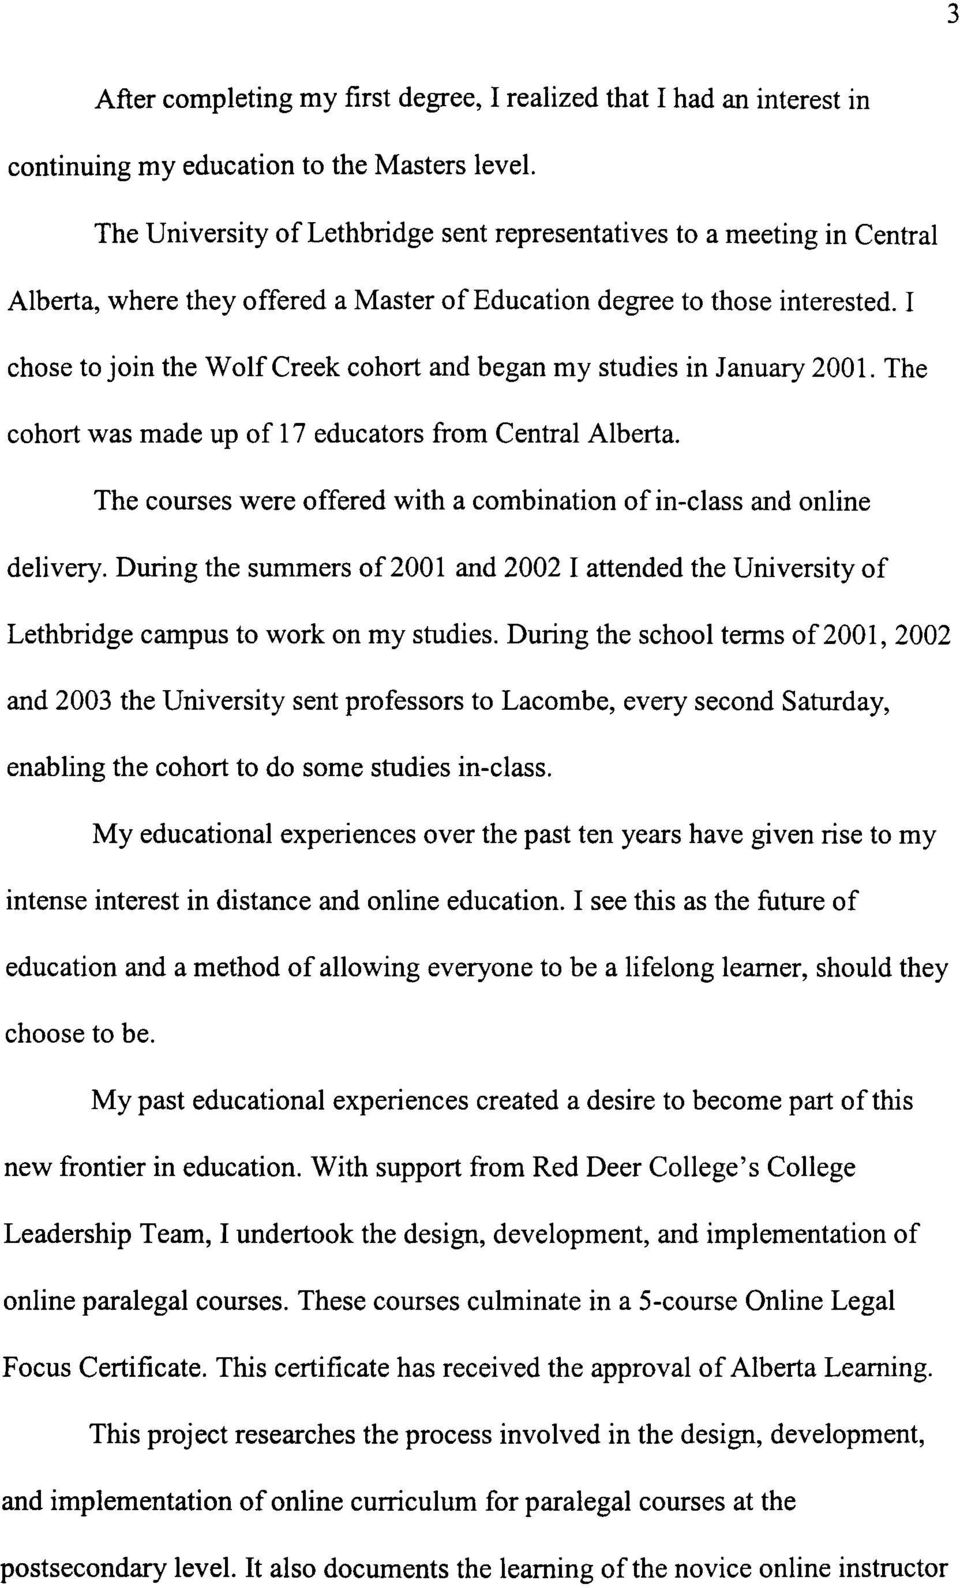 I chose to join the Wolf Creek cohort and began my studies in January 2001. The cohort was made up of 17 educators from Central Alberta.